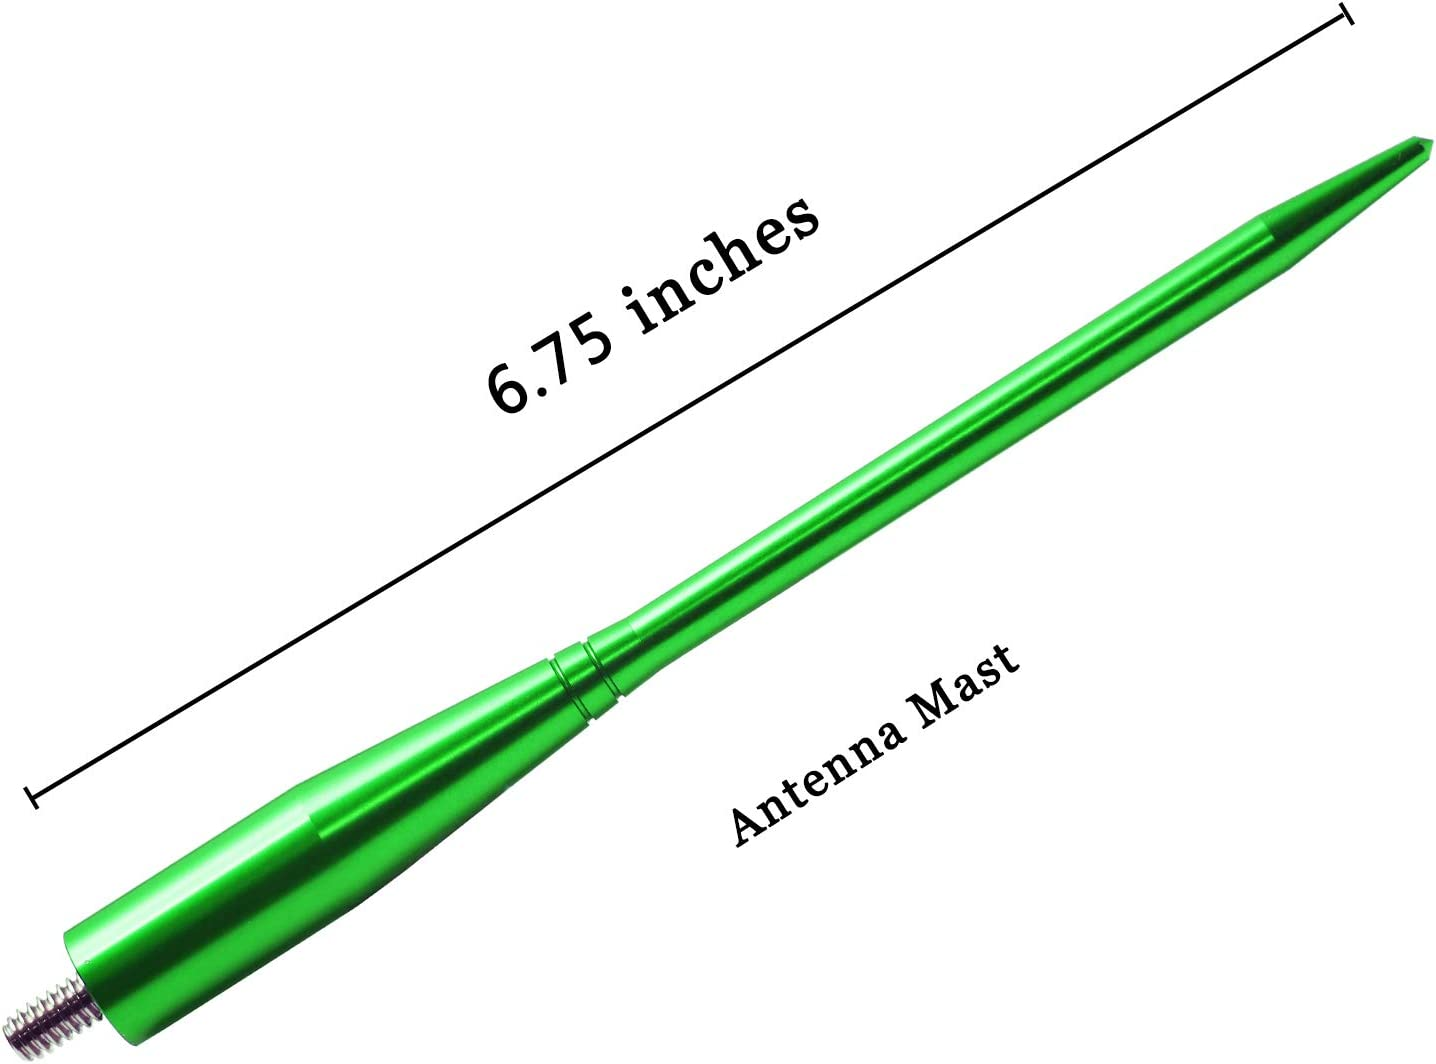 6.75 inches-Green JAPower Replacement Antenna Compatible with Jeep Grand Cherokee 2011-2015